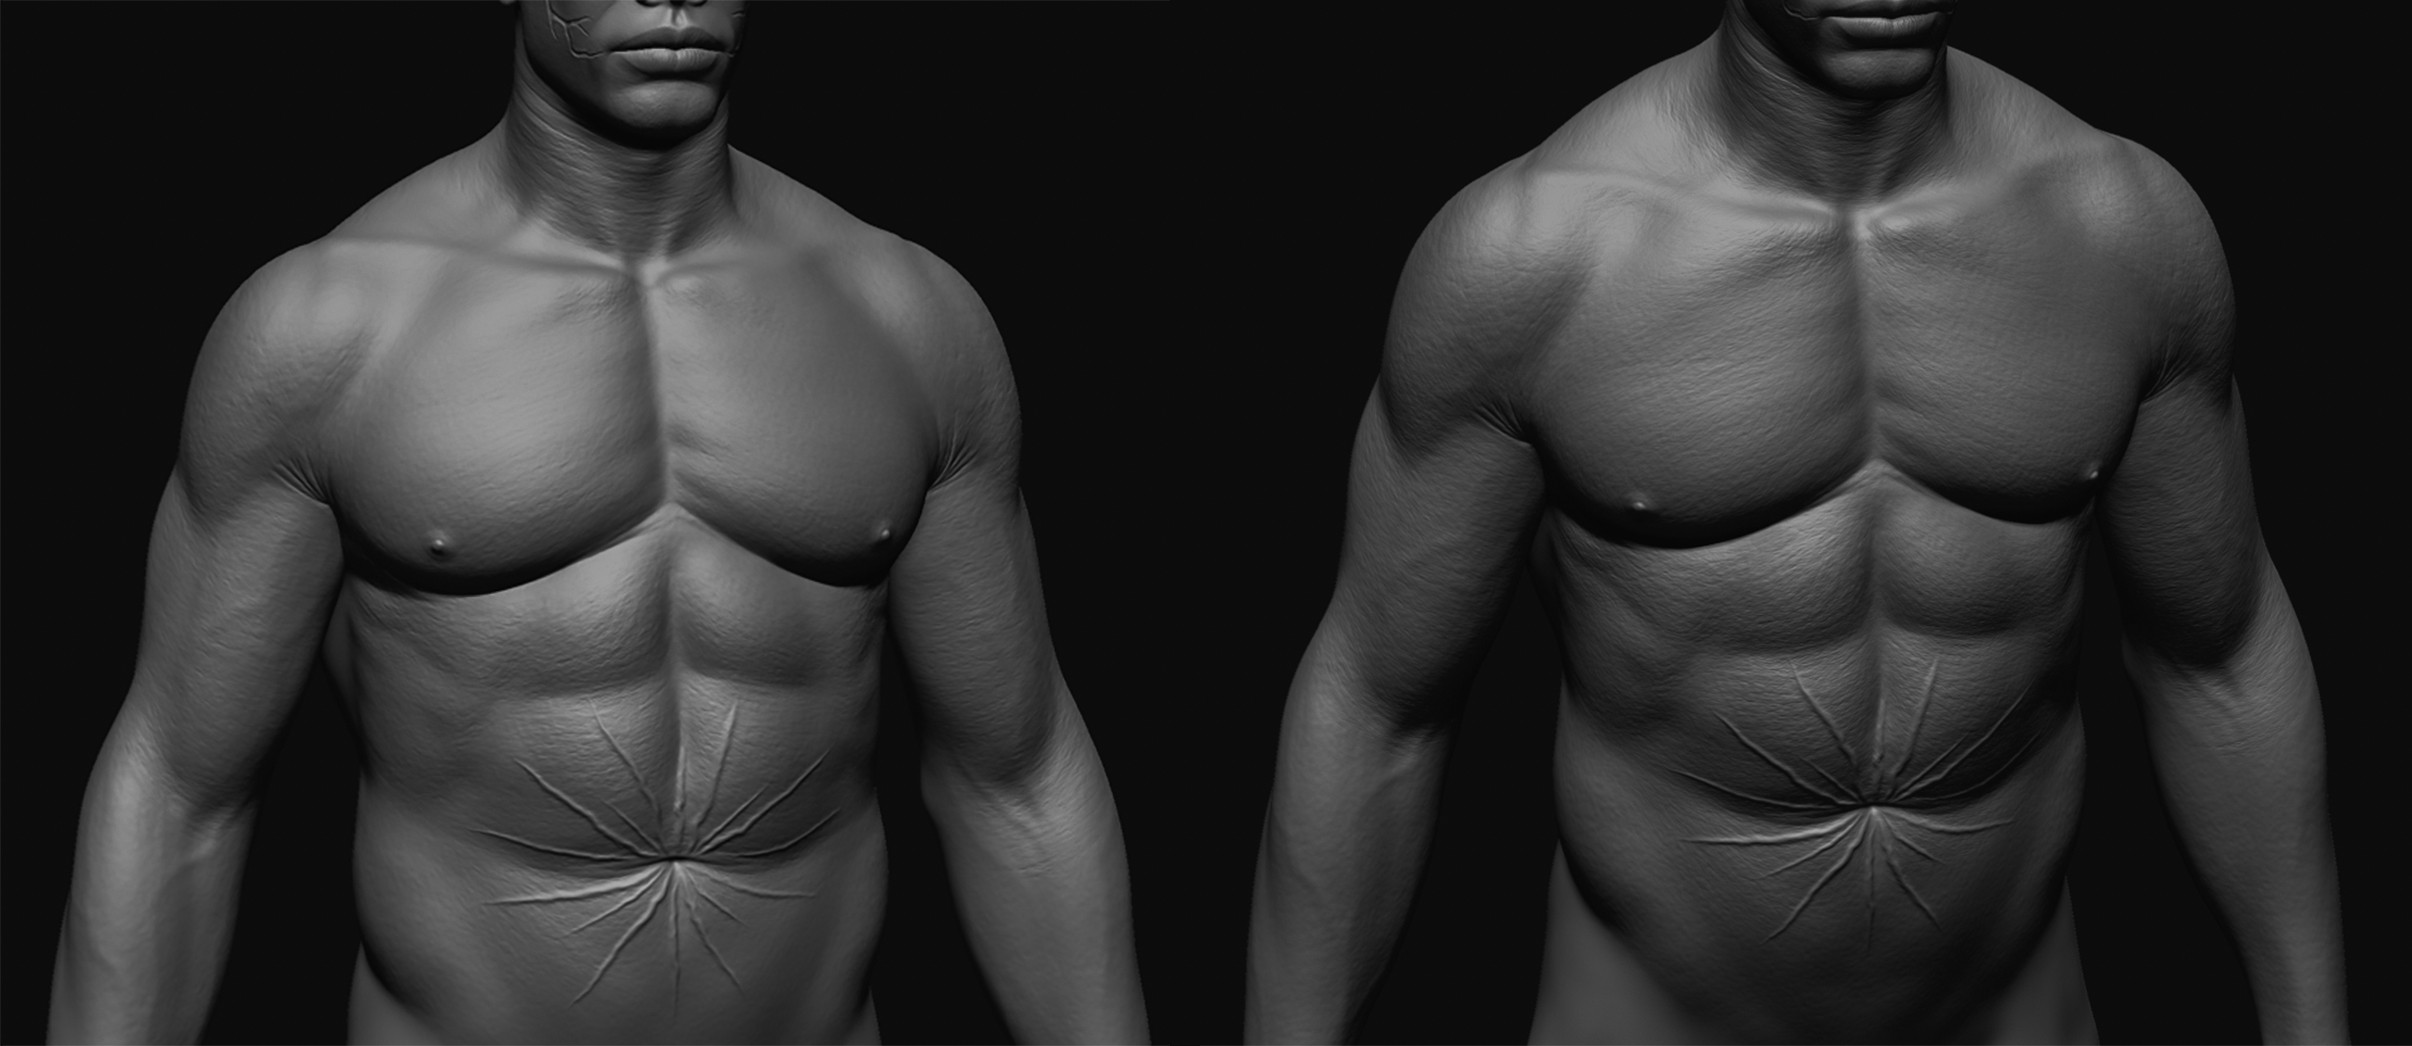 Initial torso sculpt before adding fat and researching scarification types/methods